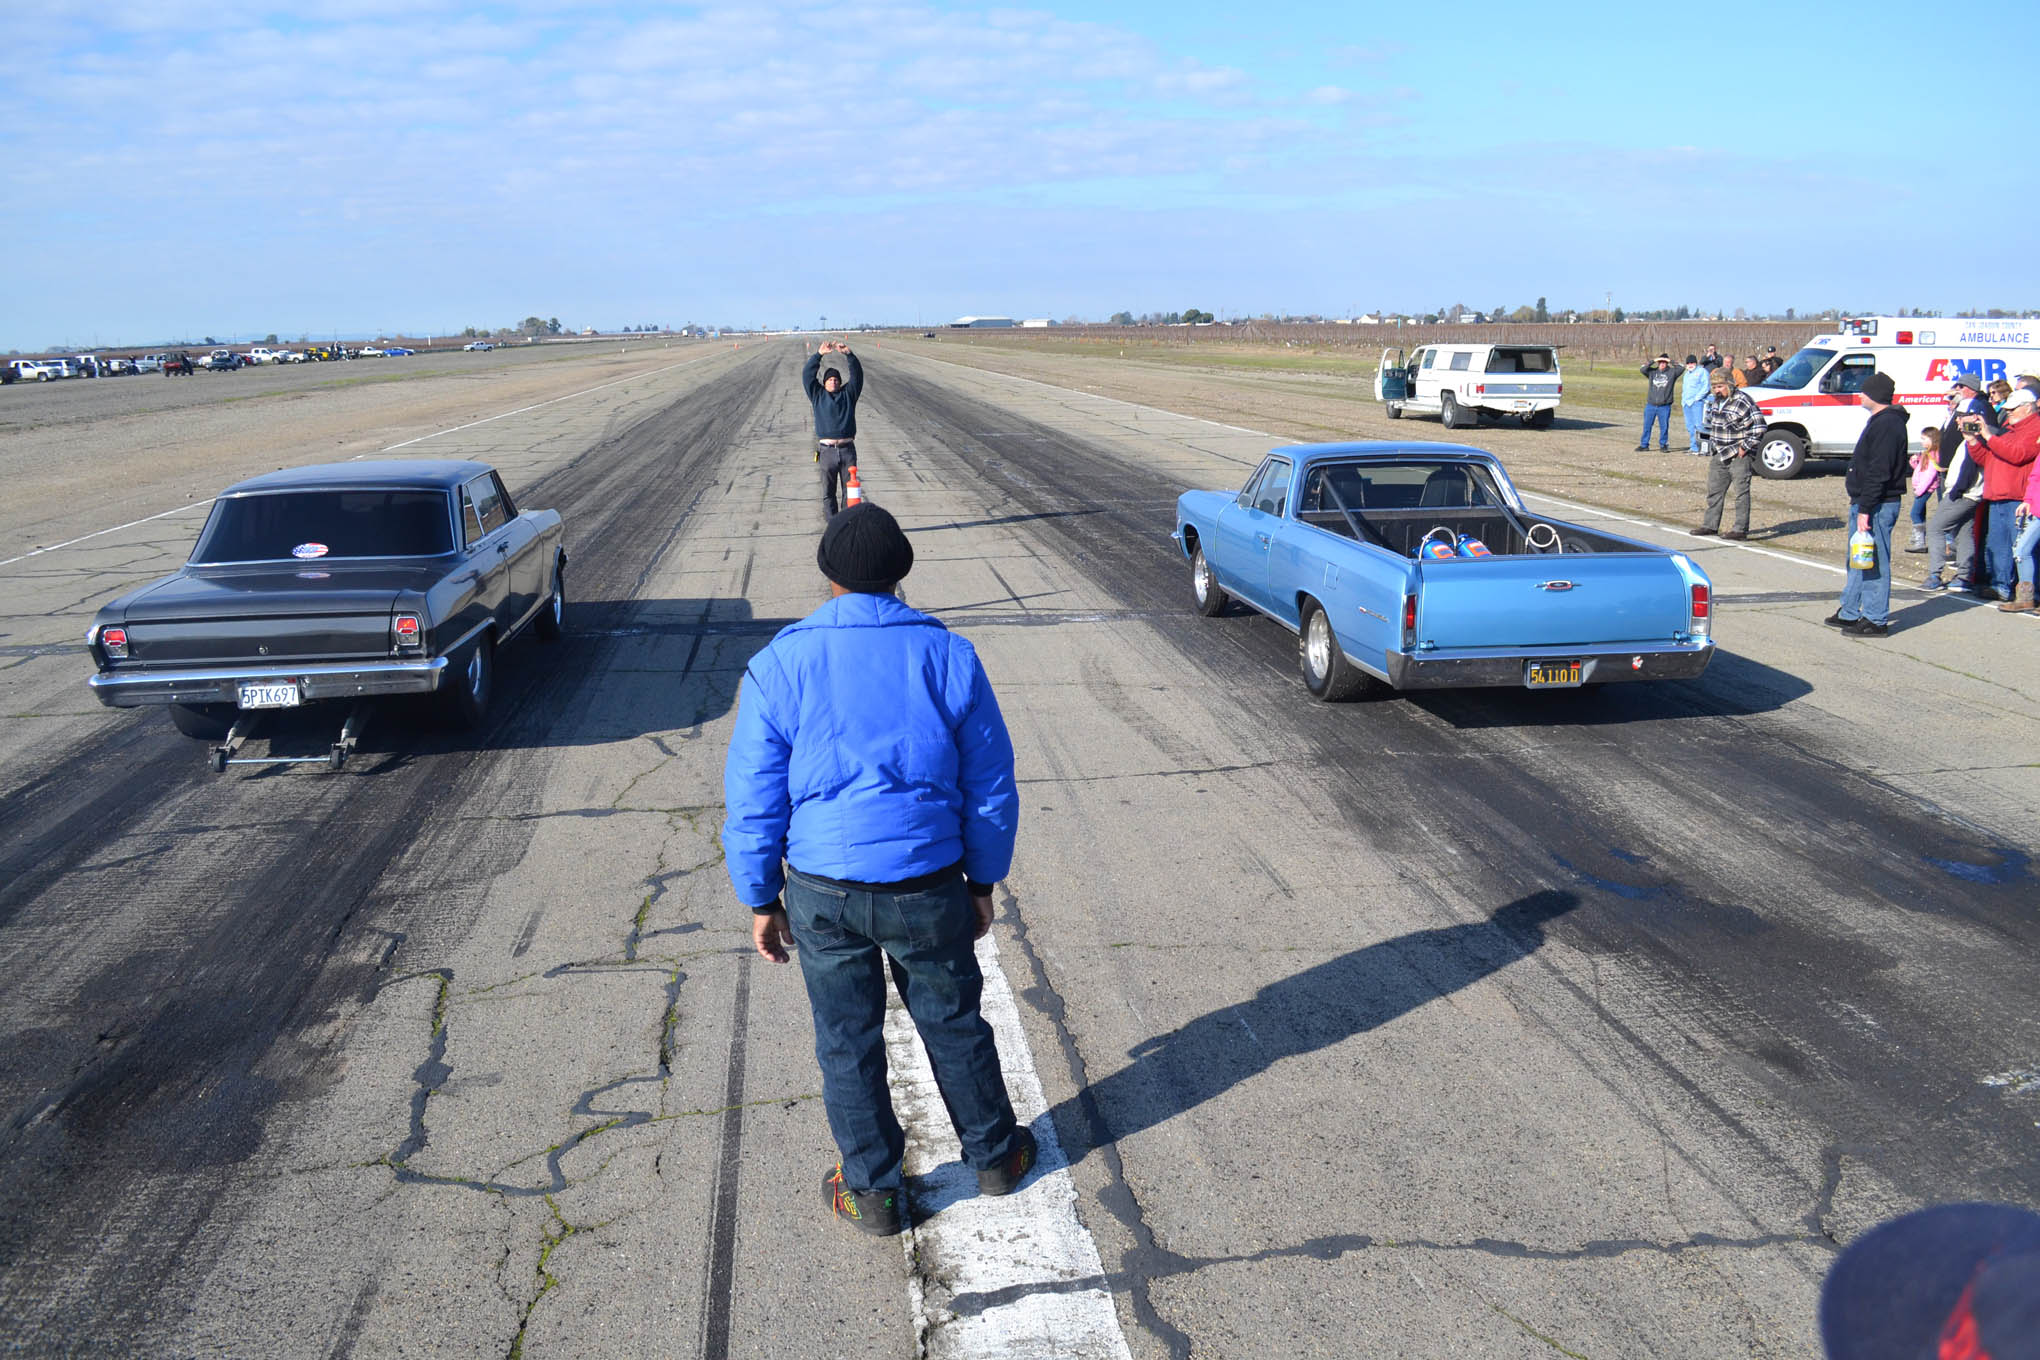 Two of the best-hooking cars of the event were this tubbed early Nova in the left lane and the blue nitrous-assisted El Camino in the right lane. The El Camino was one of the only vehicles to pull the wheels on the starting line, while the Nova was usually able to motor ahead of the competition, even while hazing the big slicks.